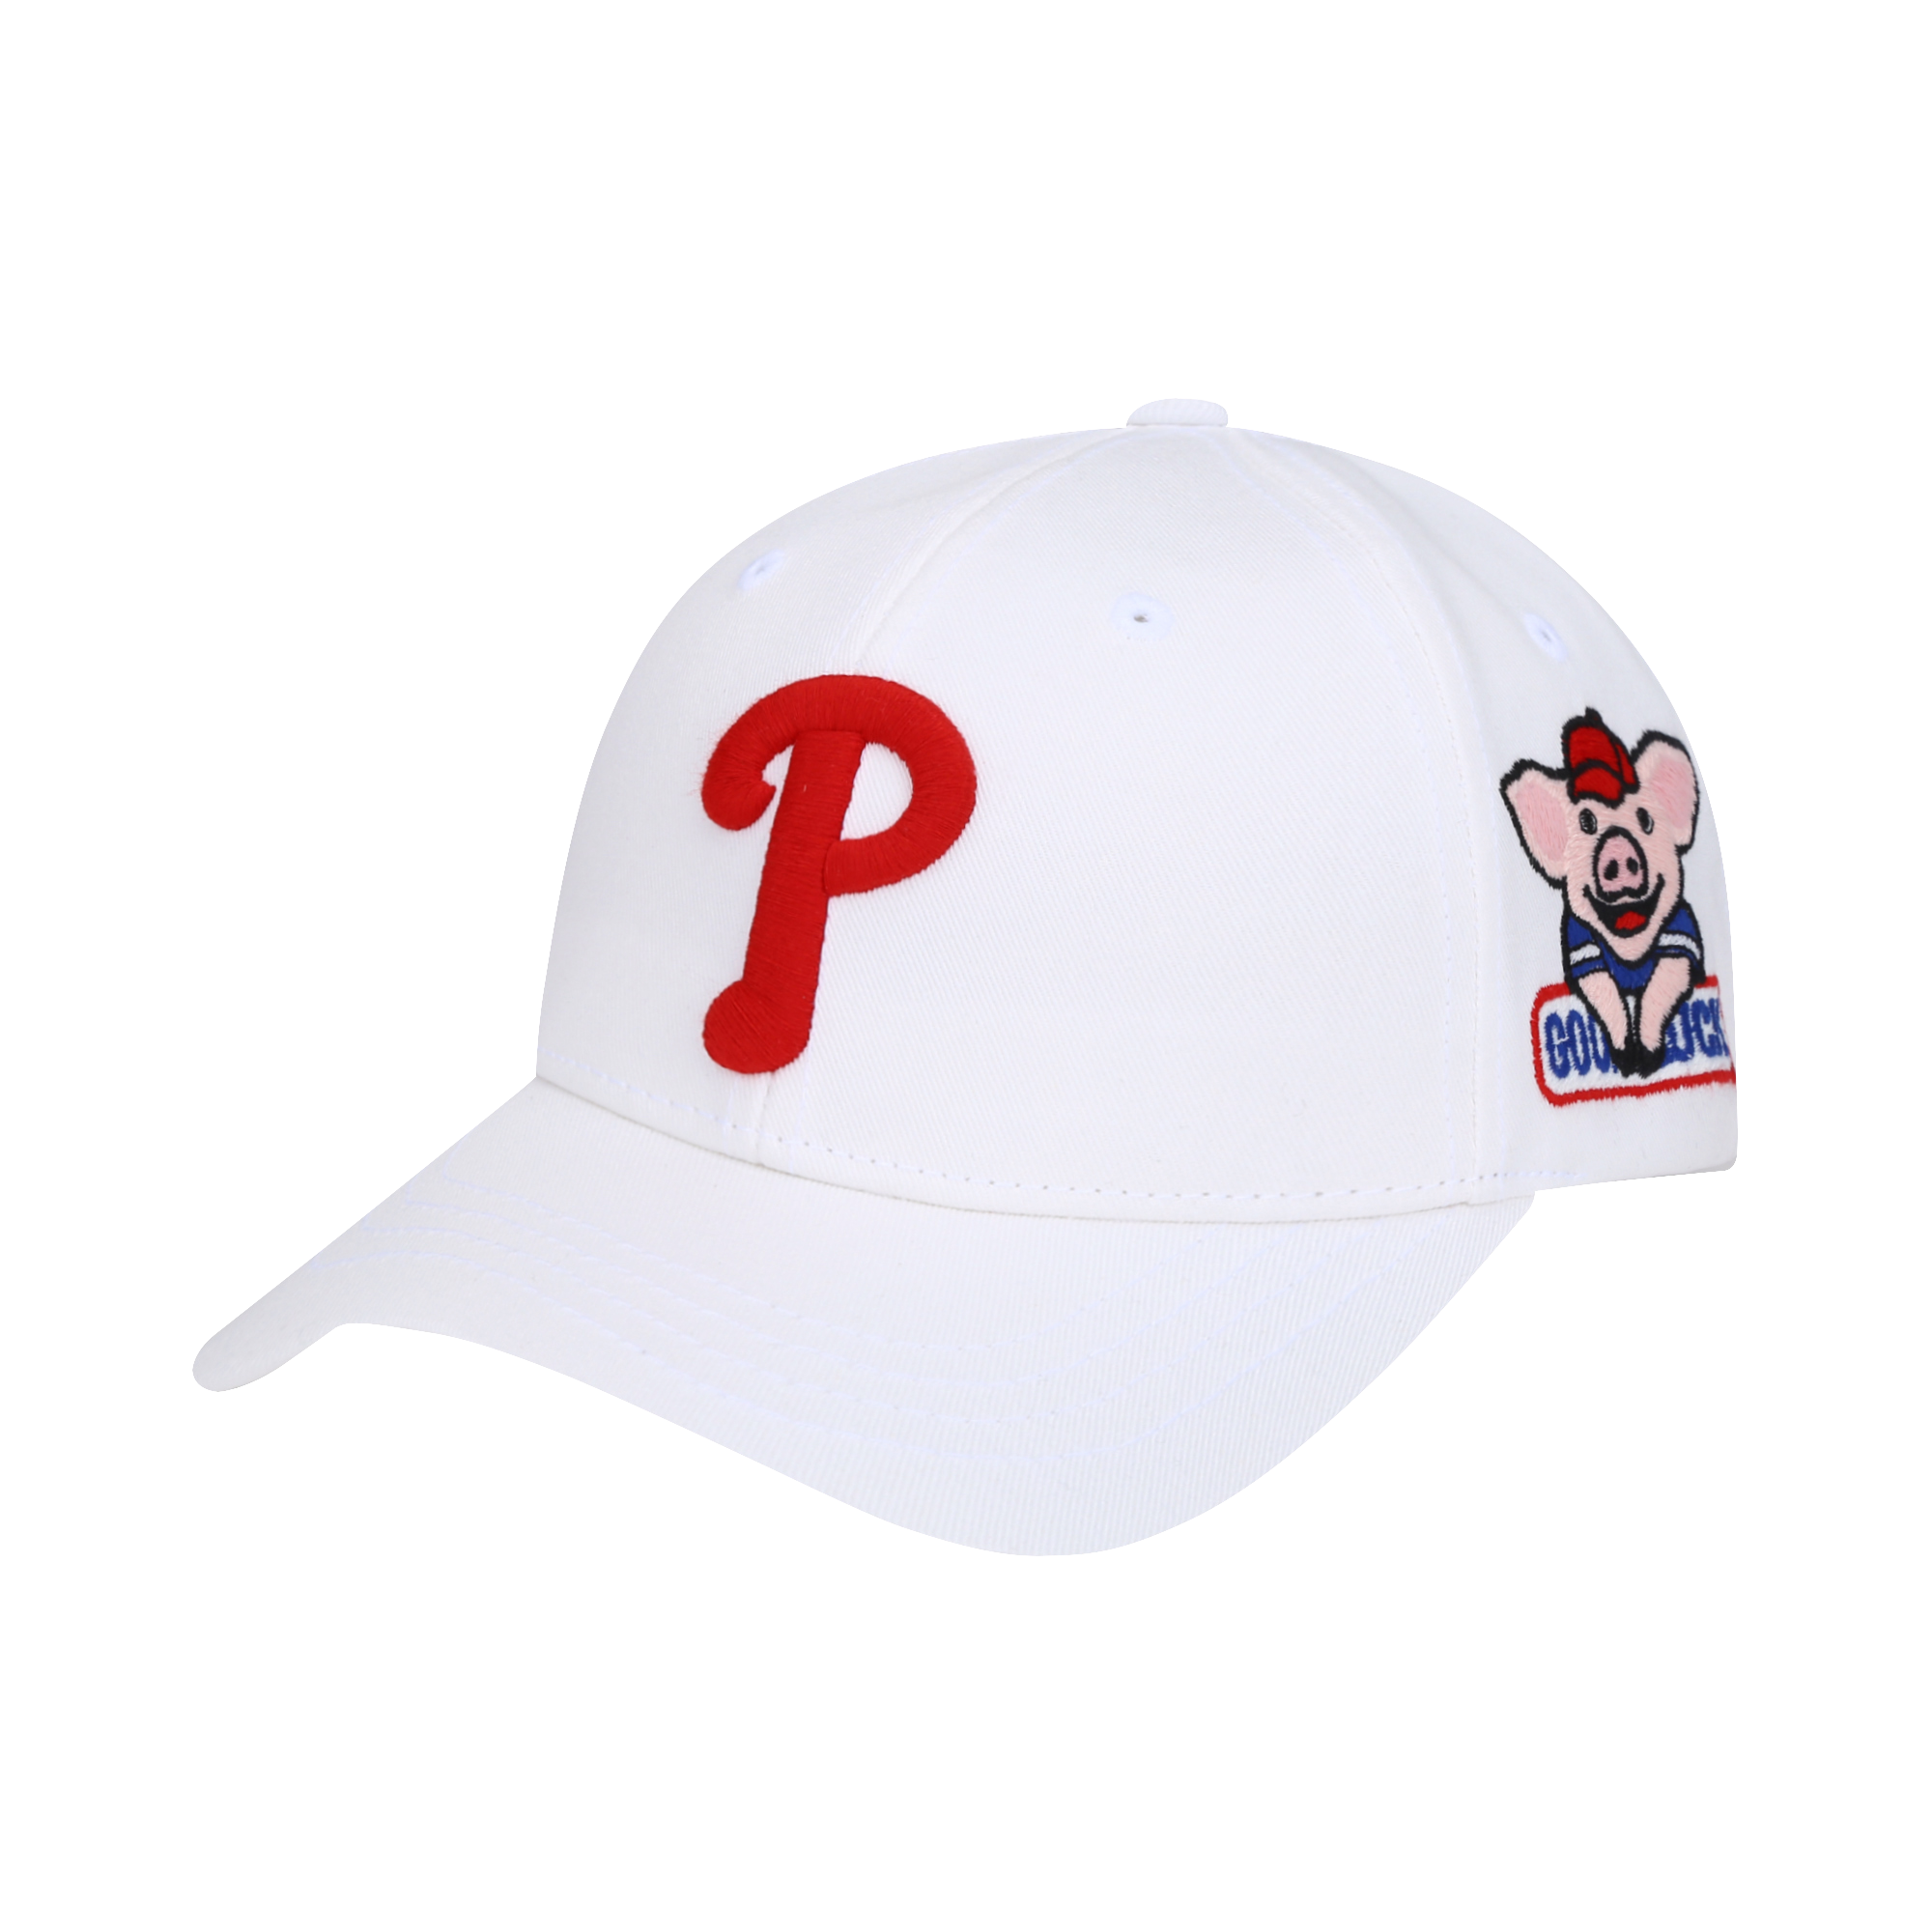 PHILADELPHIA PHILLIES HAPPY NEW YEAR LUCKY PIG CURVED CAP